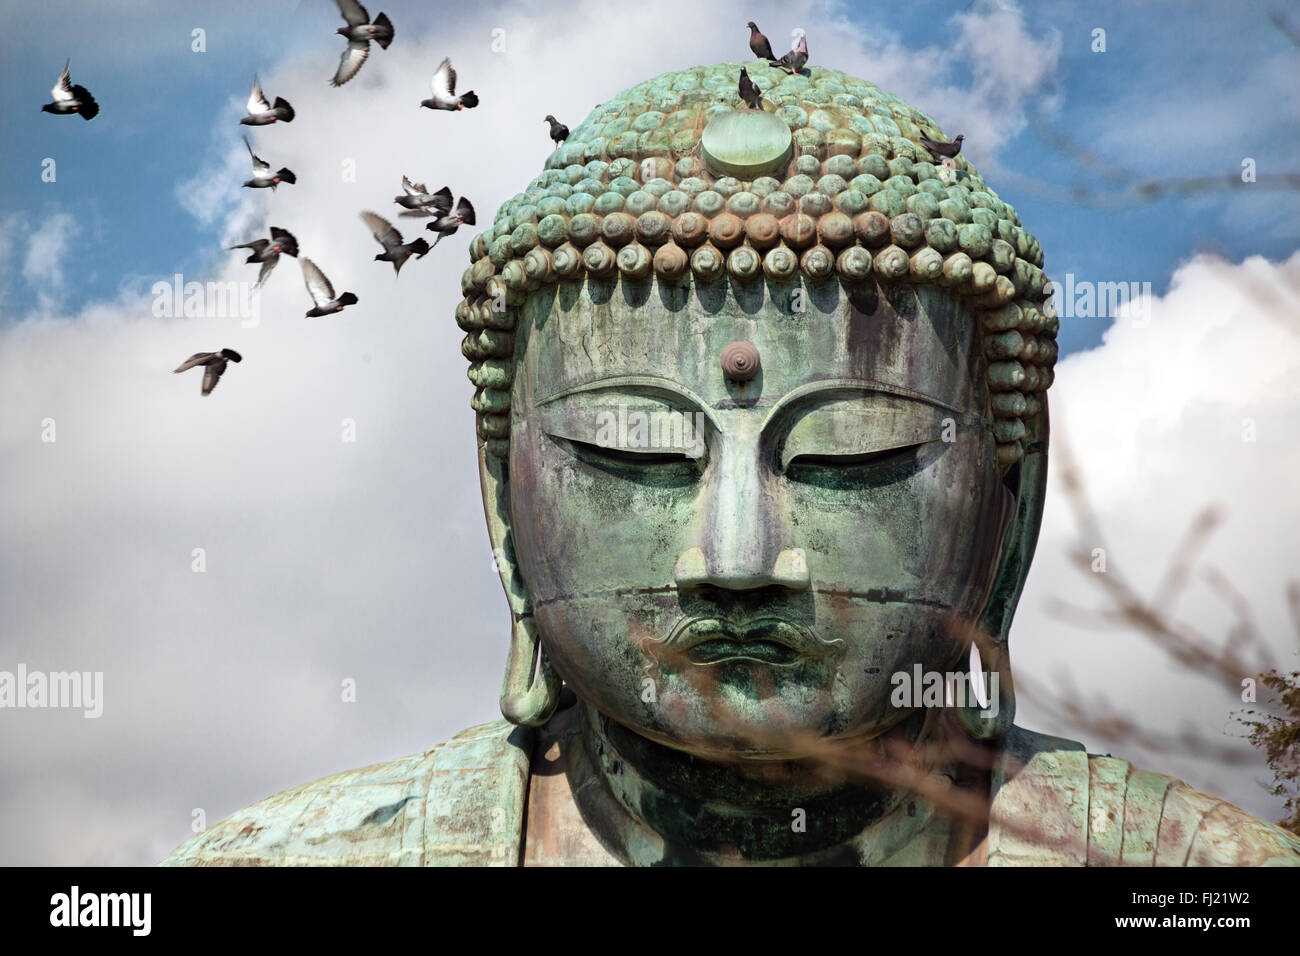 Daibutsu Kōtoku-in Great Buddha in Kamakura Japan - Stock Image